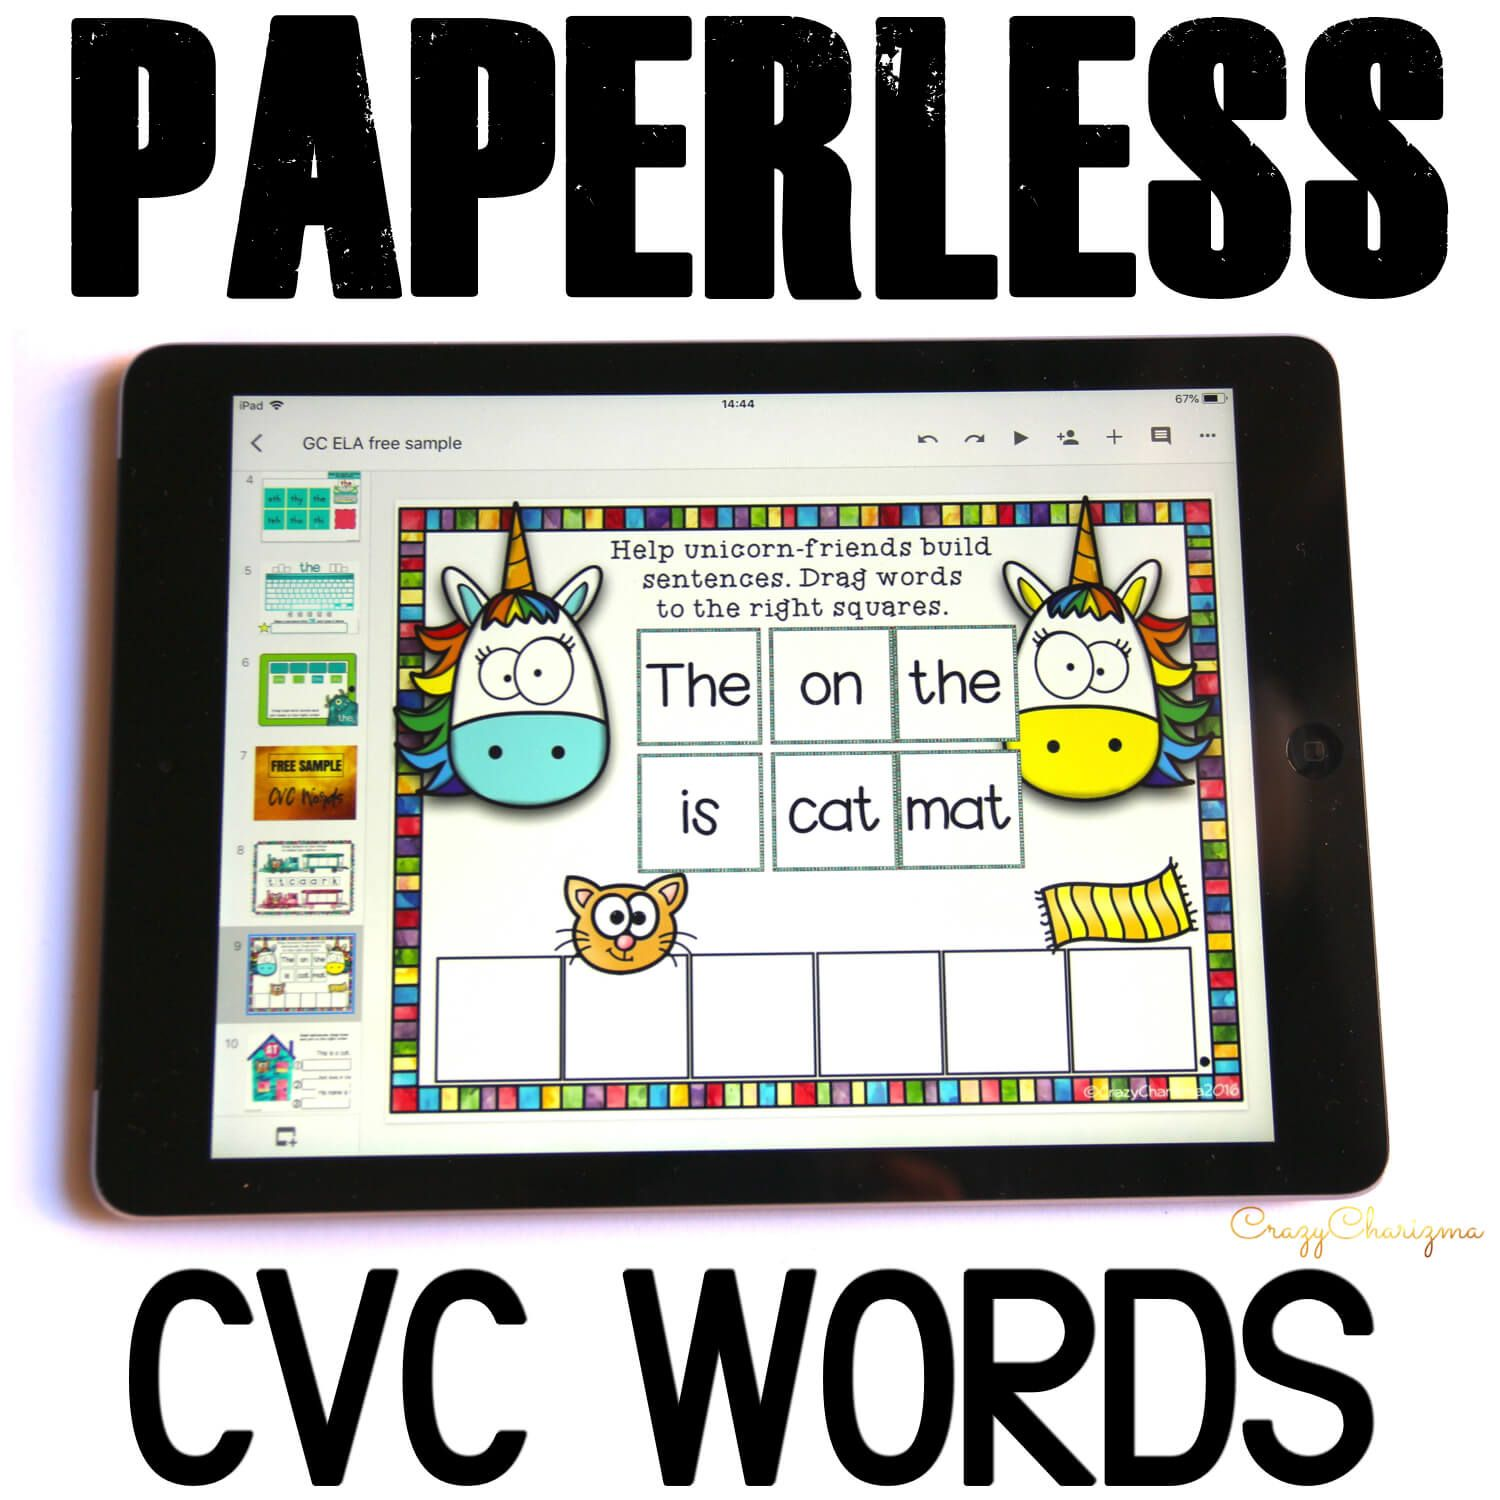 Want to engage kids with CVC word sentences? Try activities for Google Classroom in kindergarten. With images as visual help, students read sentences in a fun way!